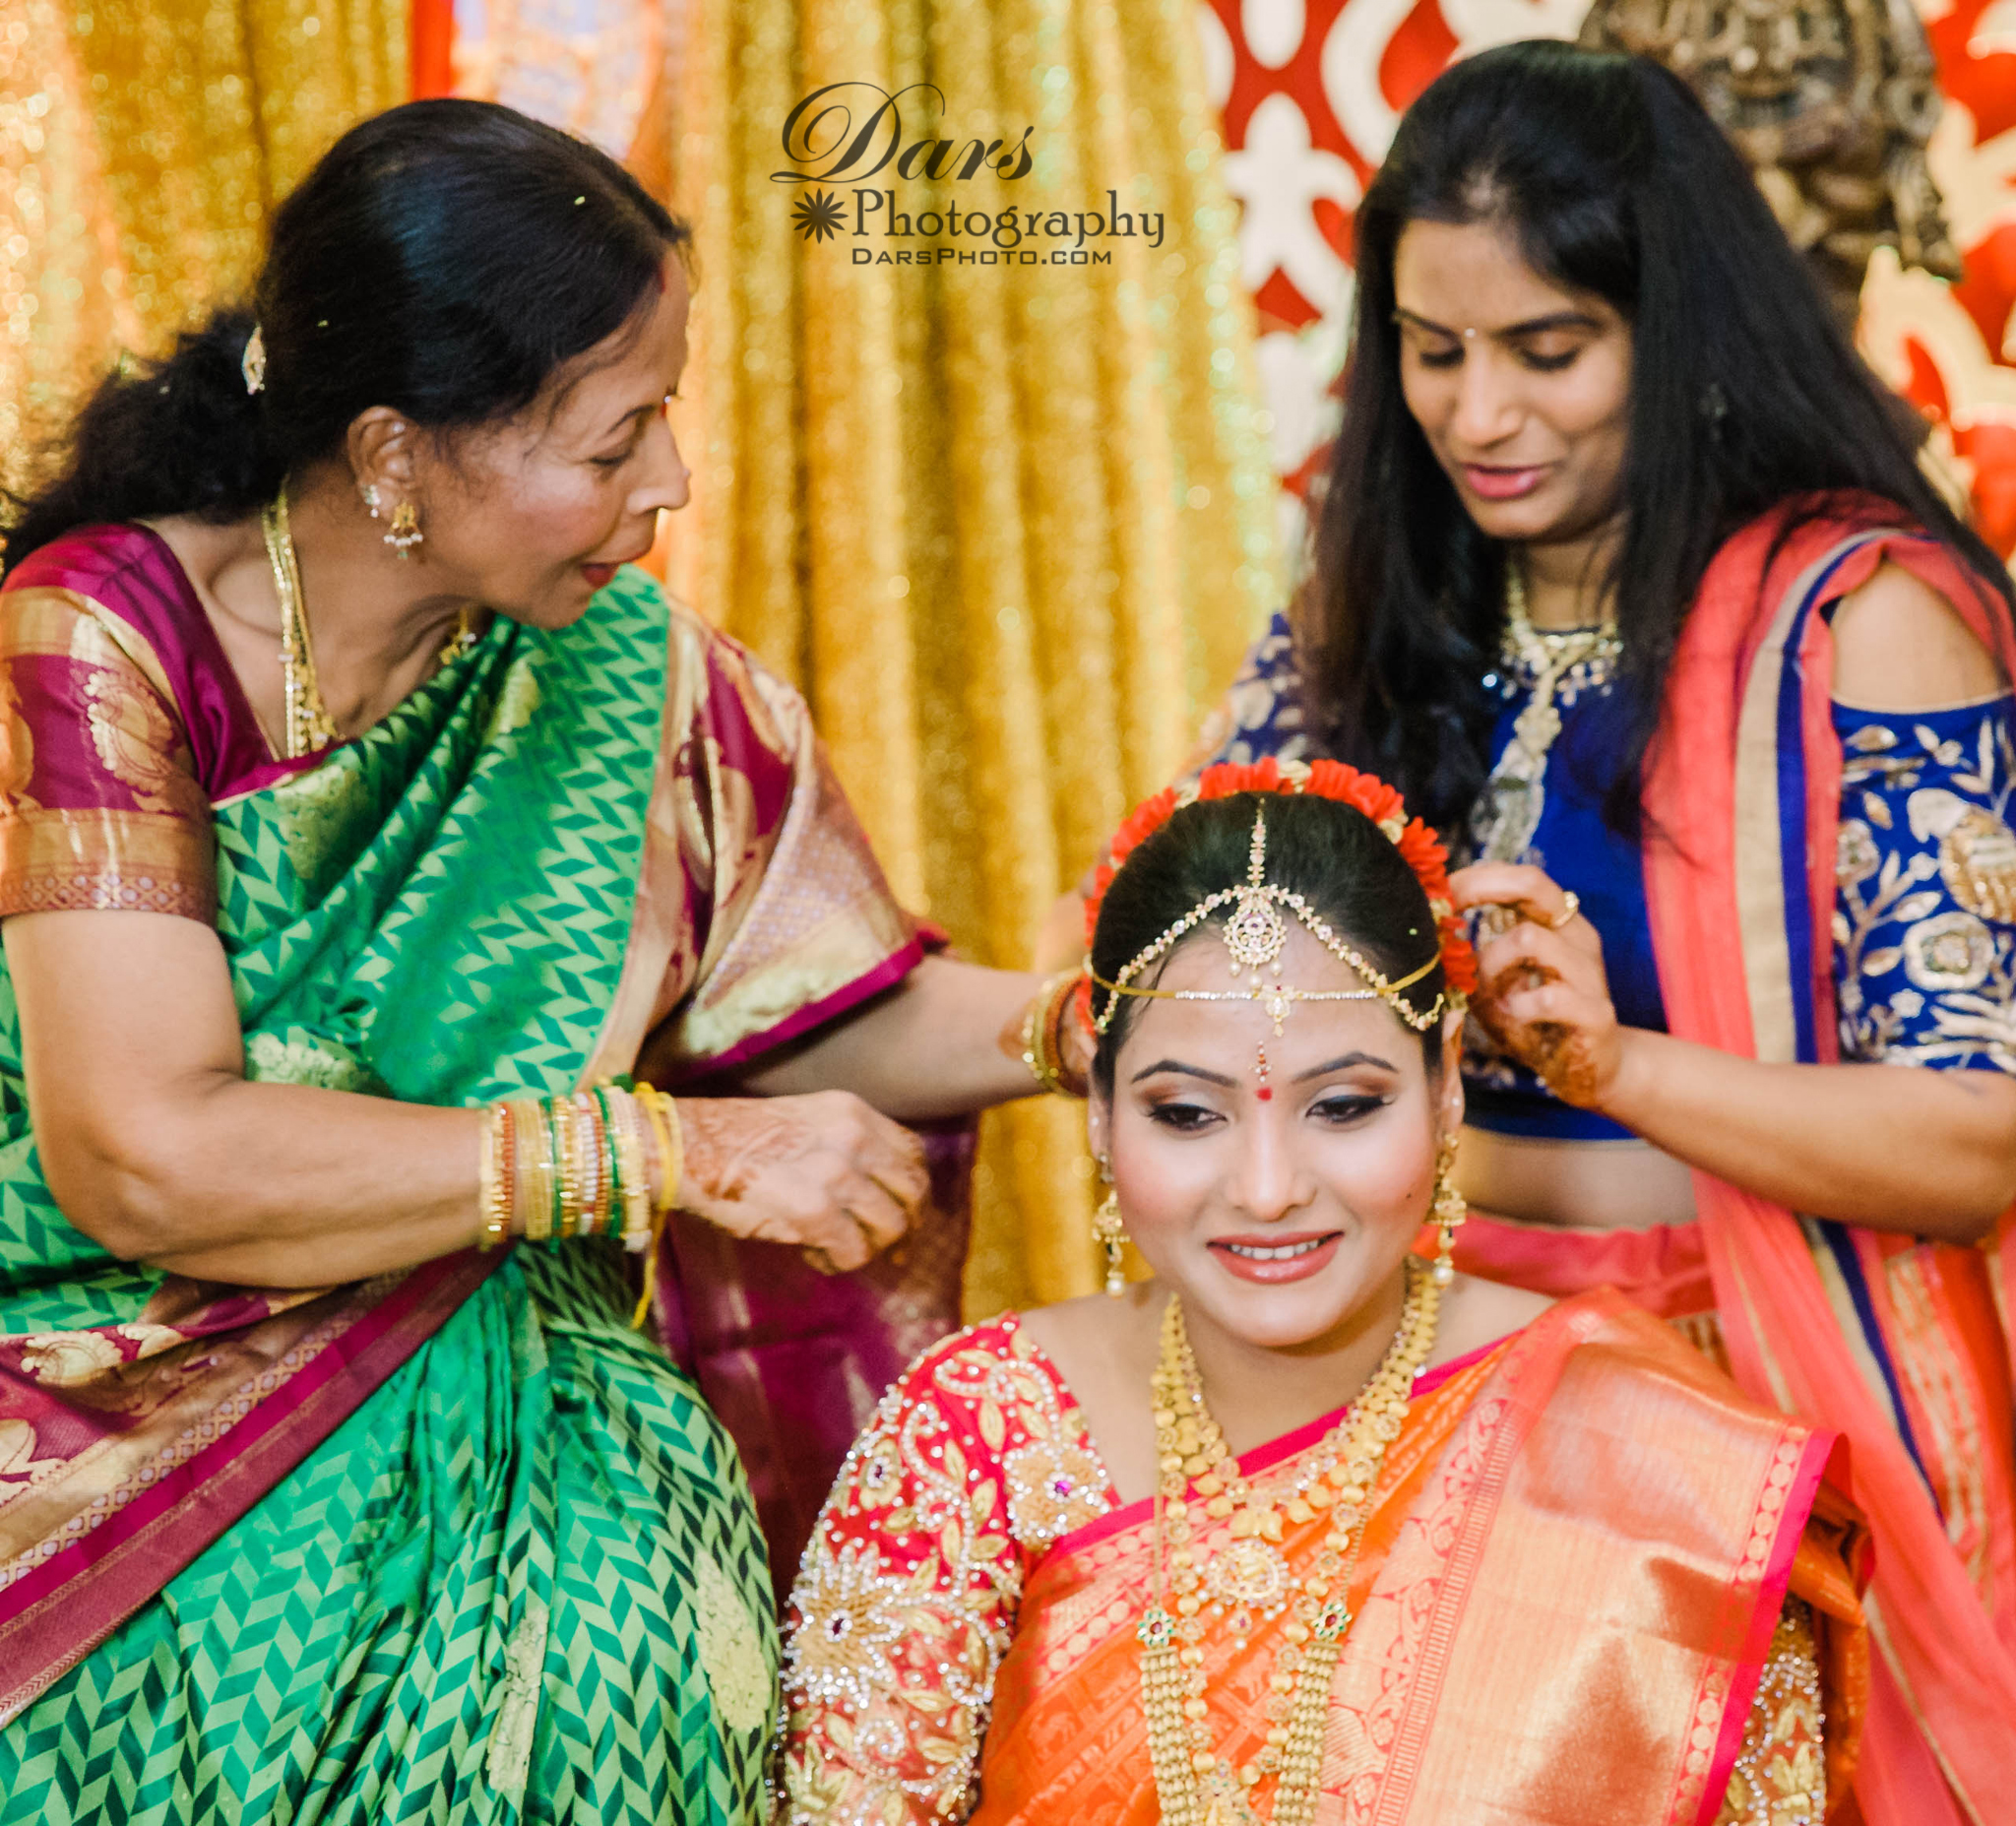 Chicago American And Indian Wedding Photographer DARS Photography 30